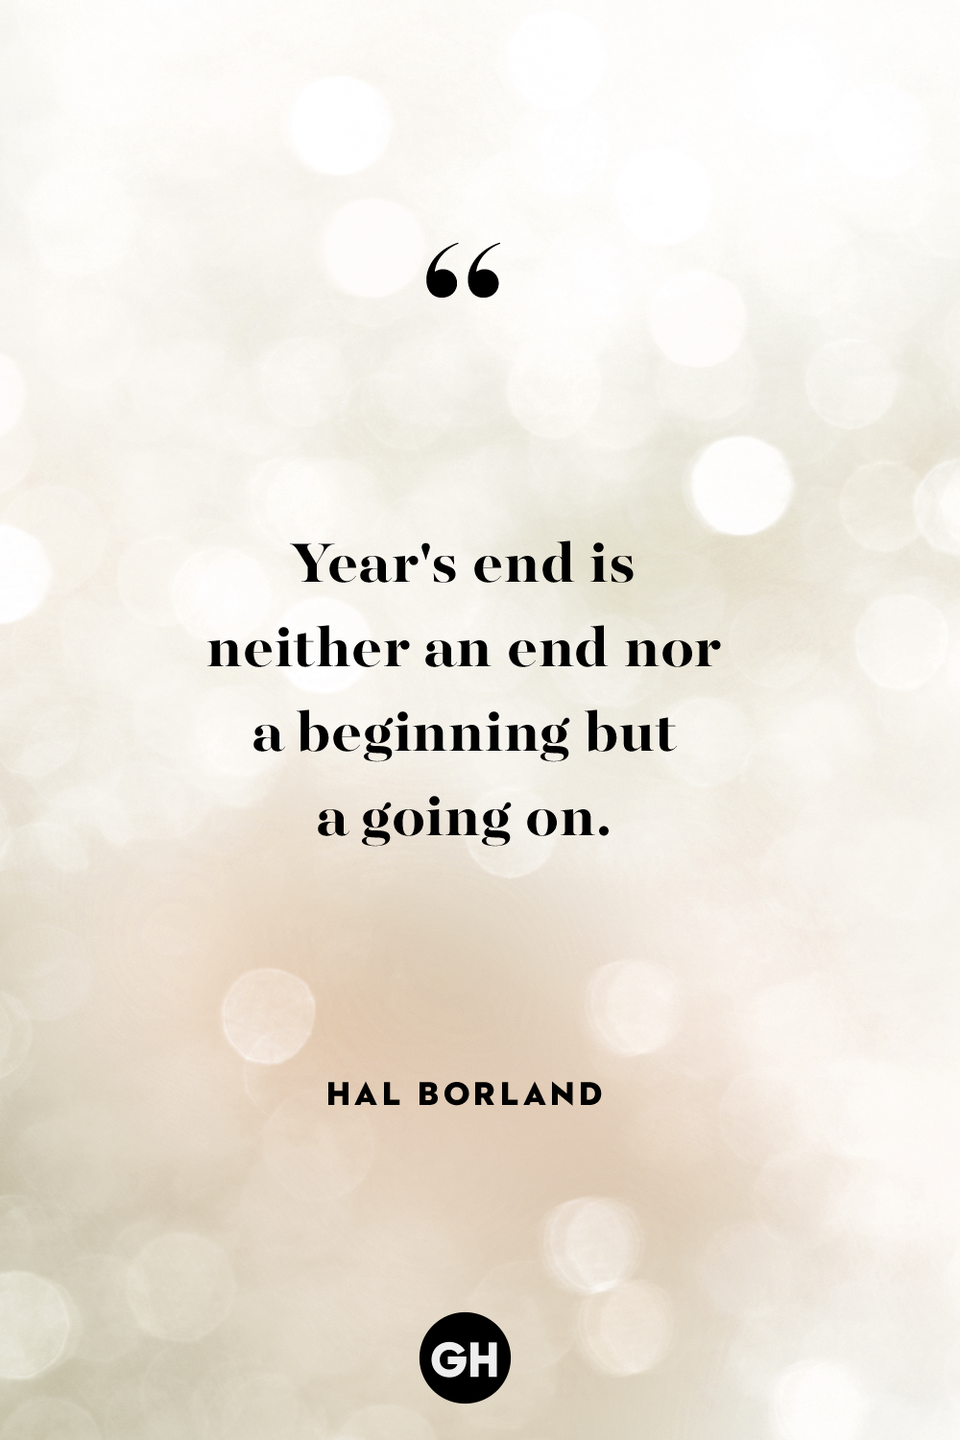 <p>Year's end is neither an end nor a beginning but a going on.</p>